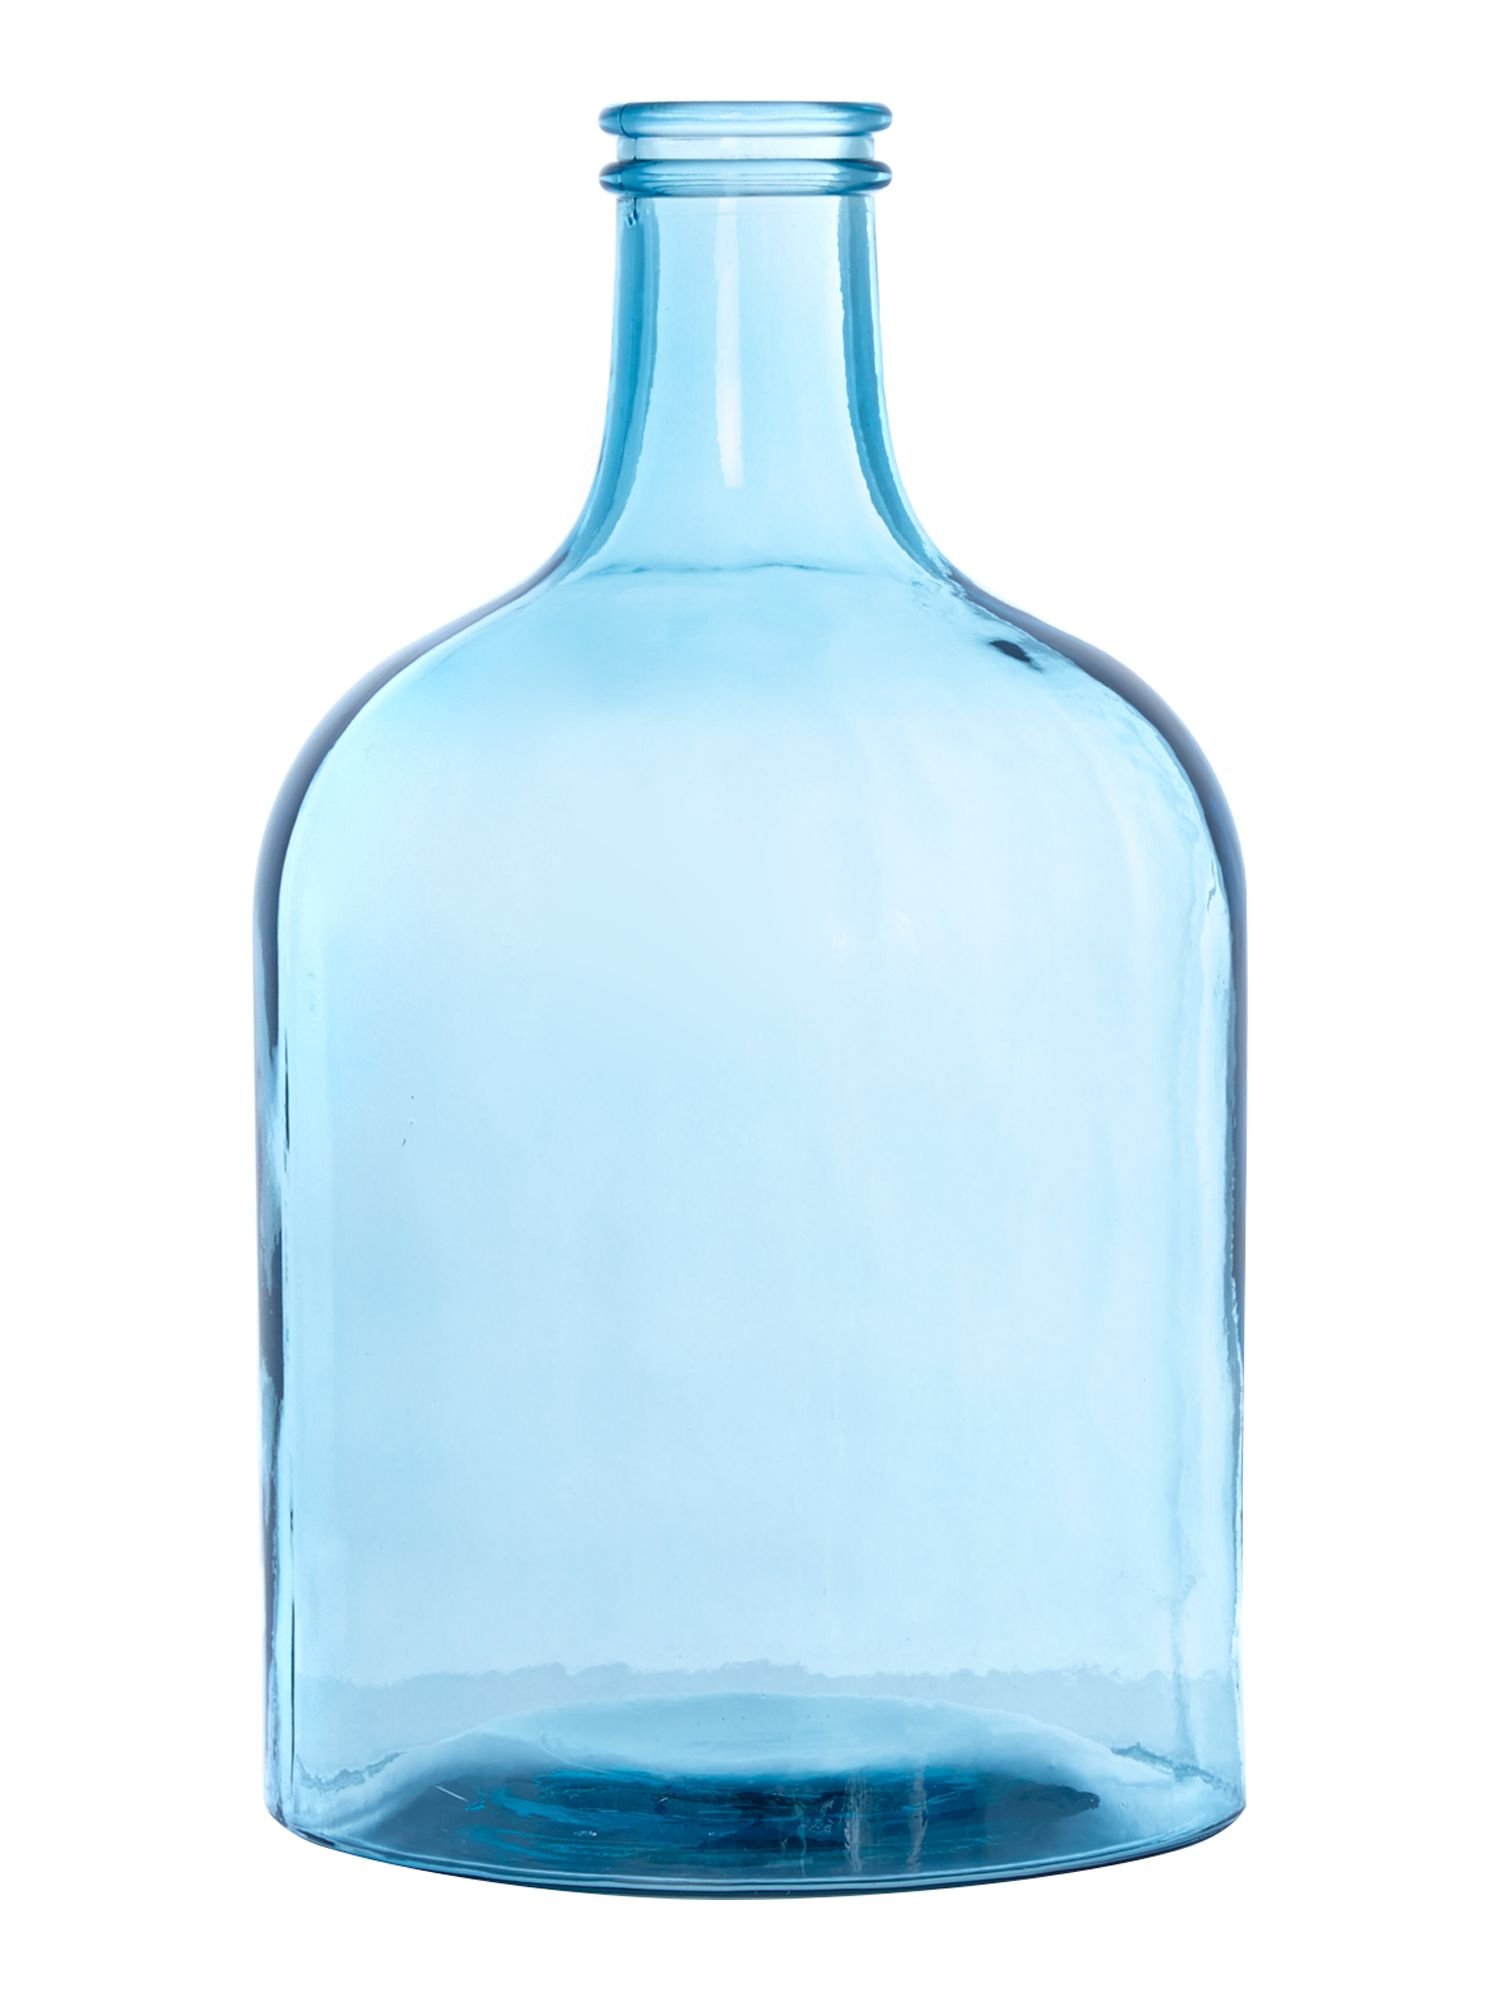 Laica glass Bottle in forget me not